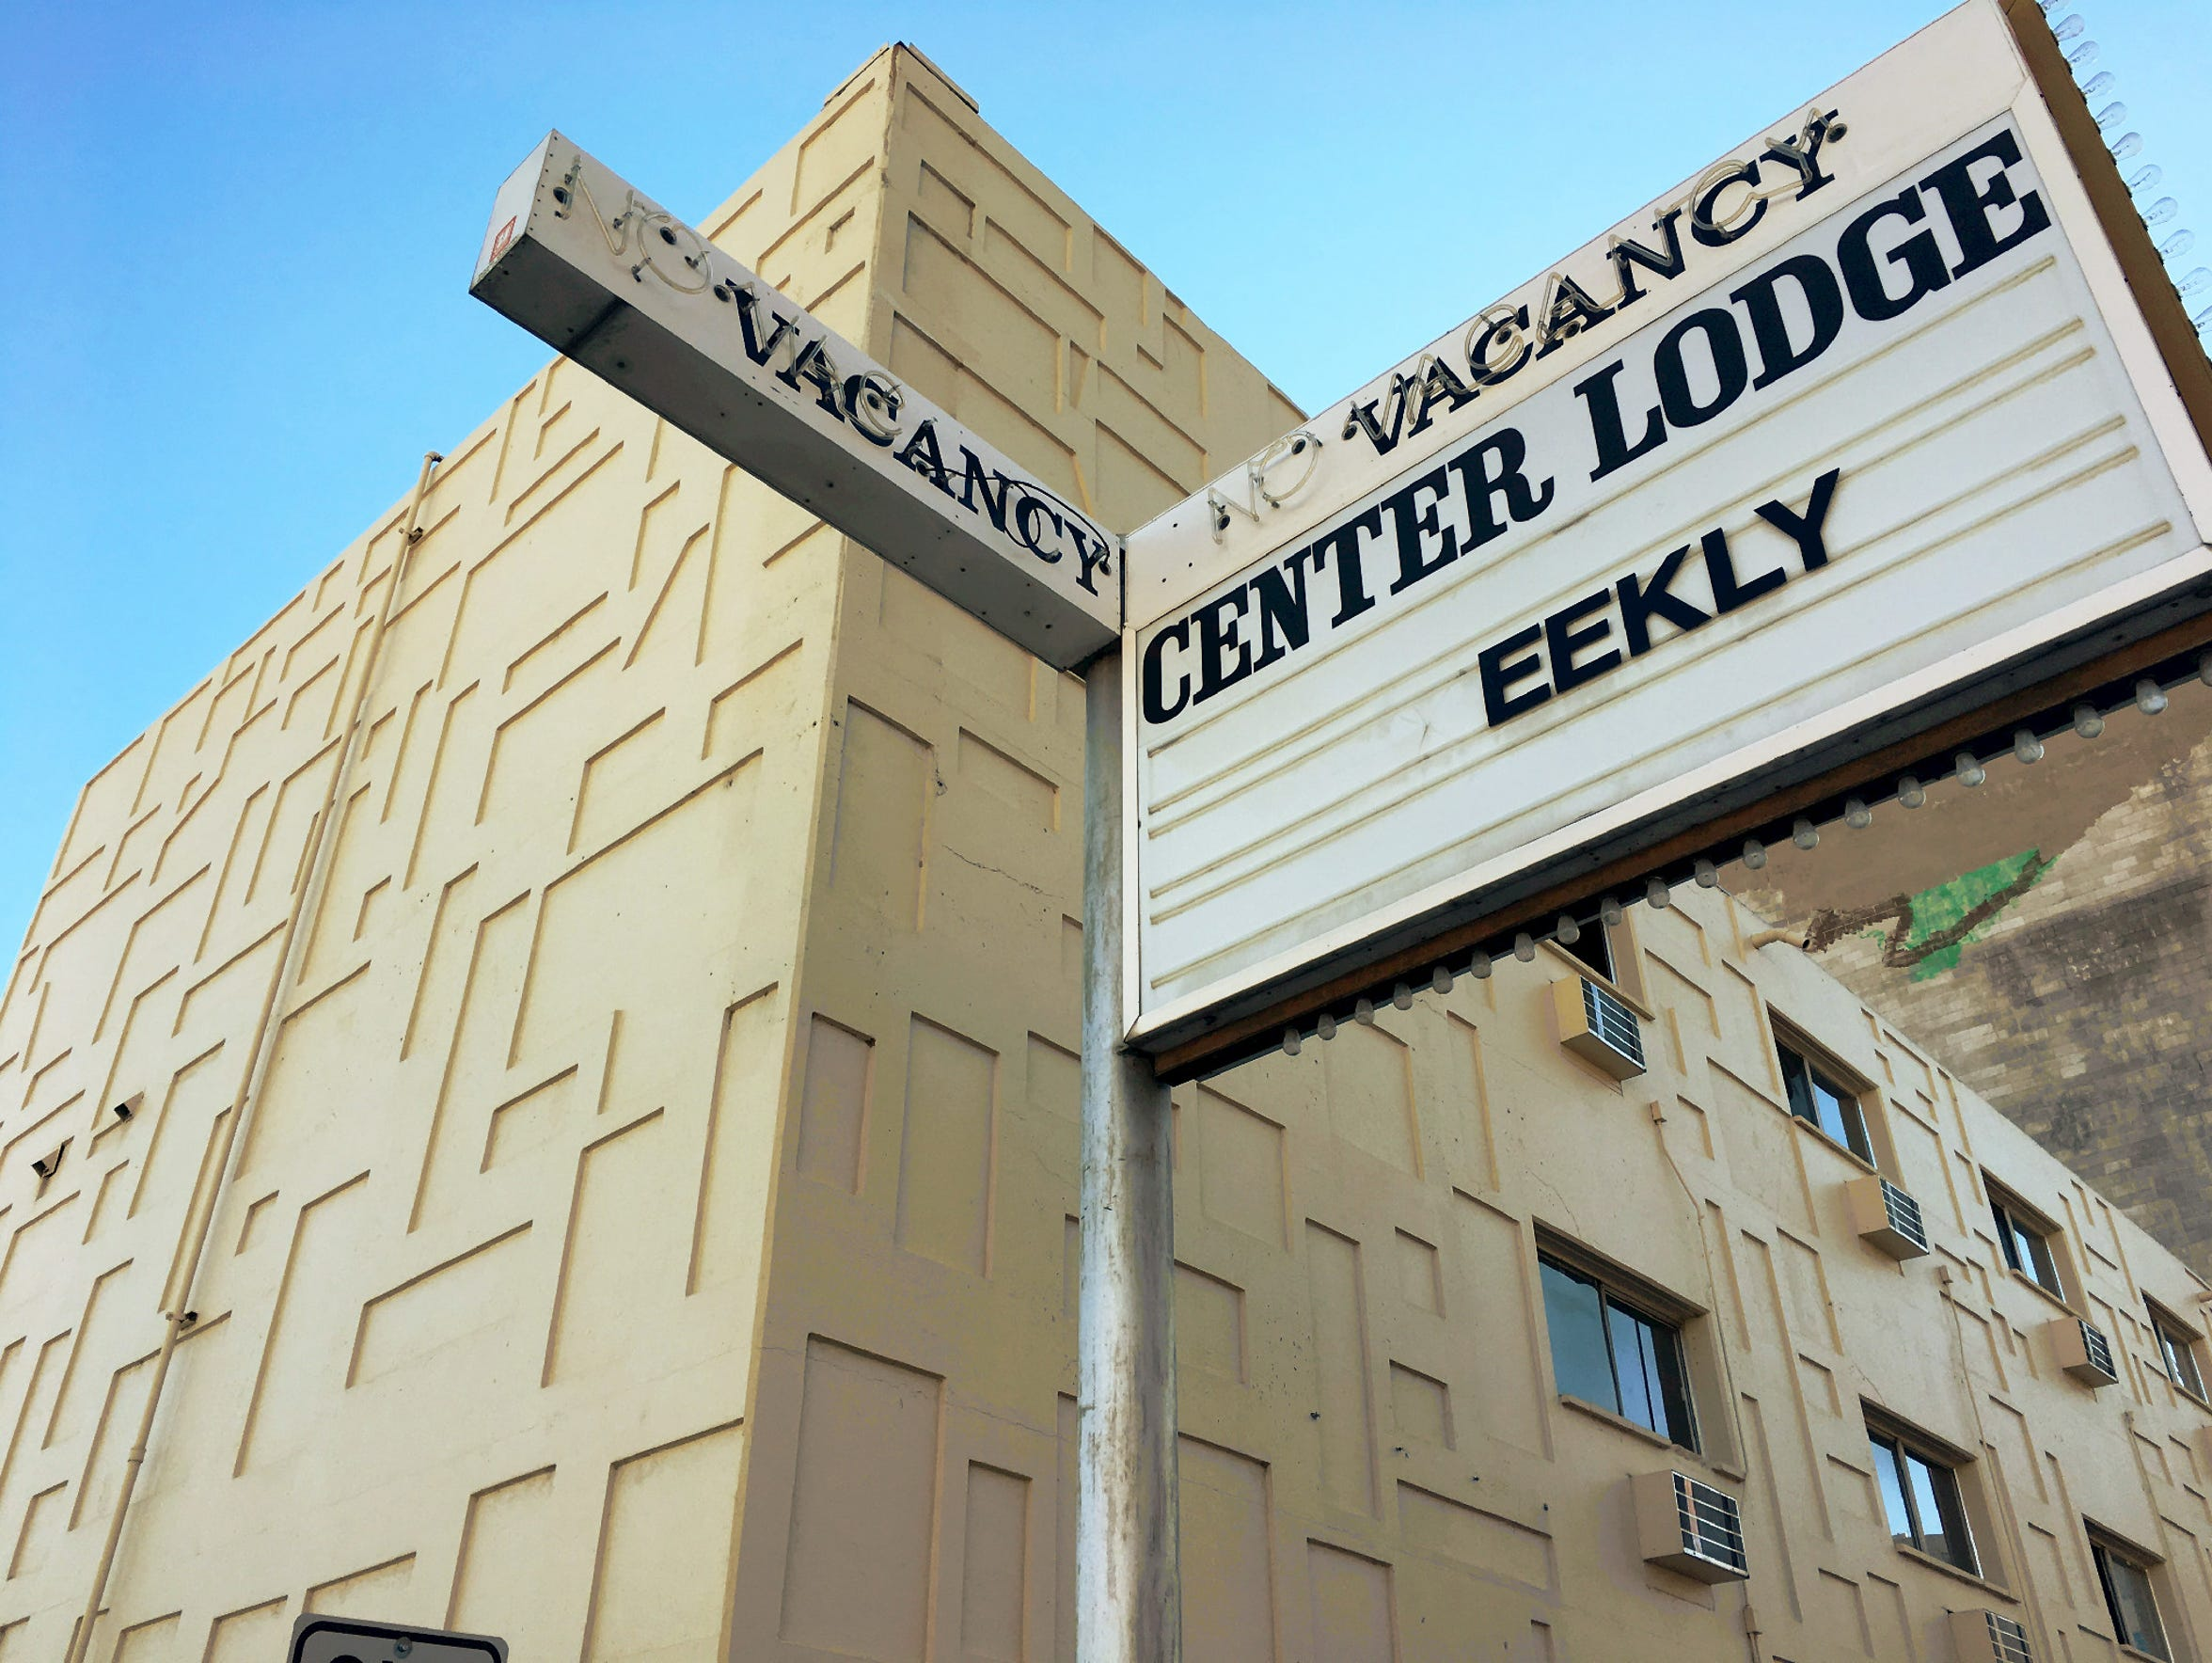 The Center Lodge, a vacant weekly hotel, has been stripped